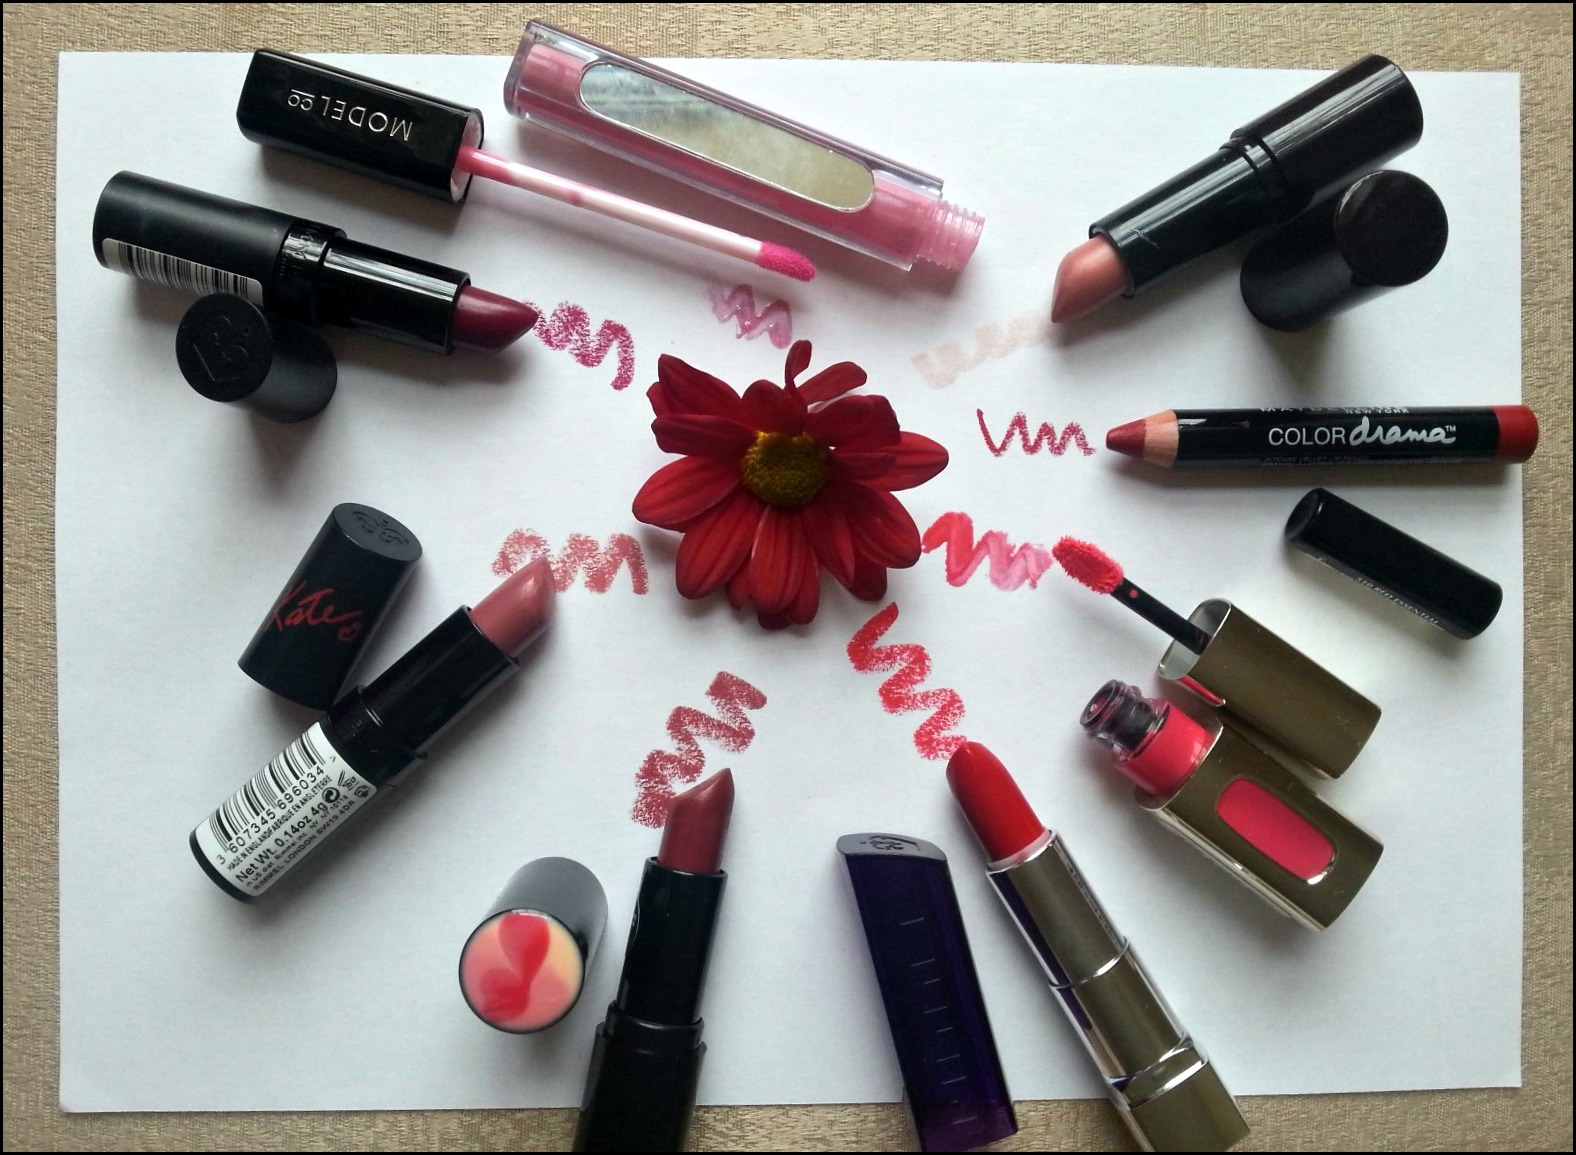 The lip product addict tag picture